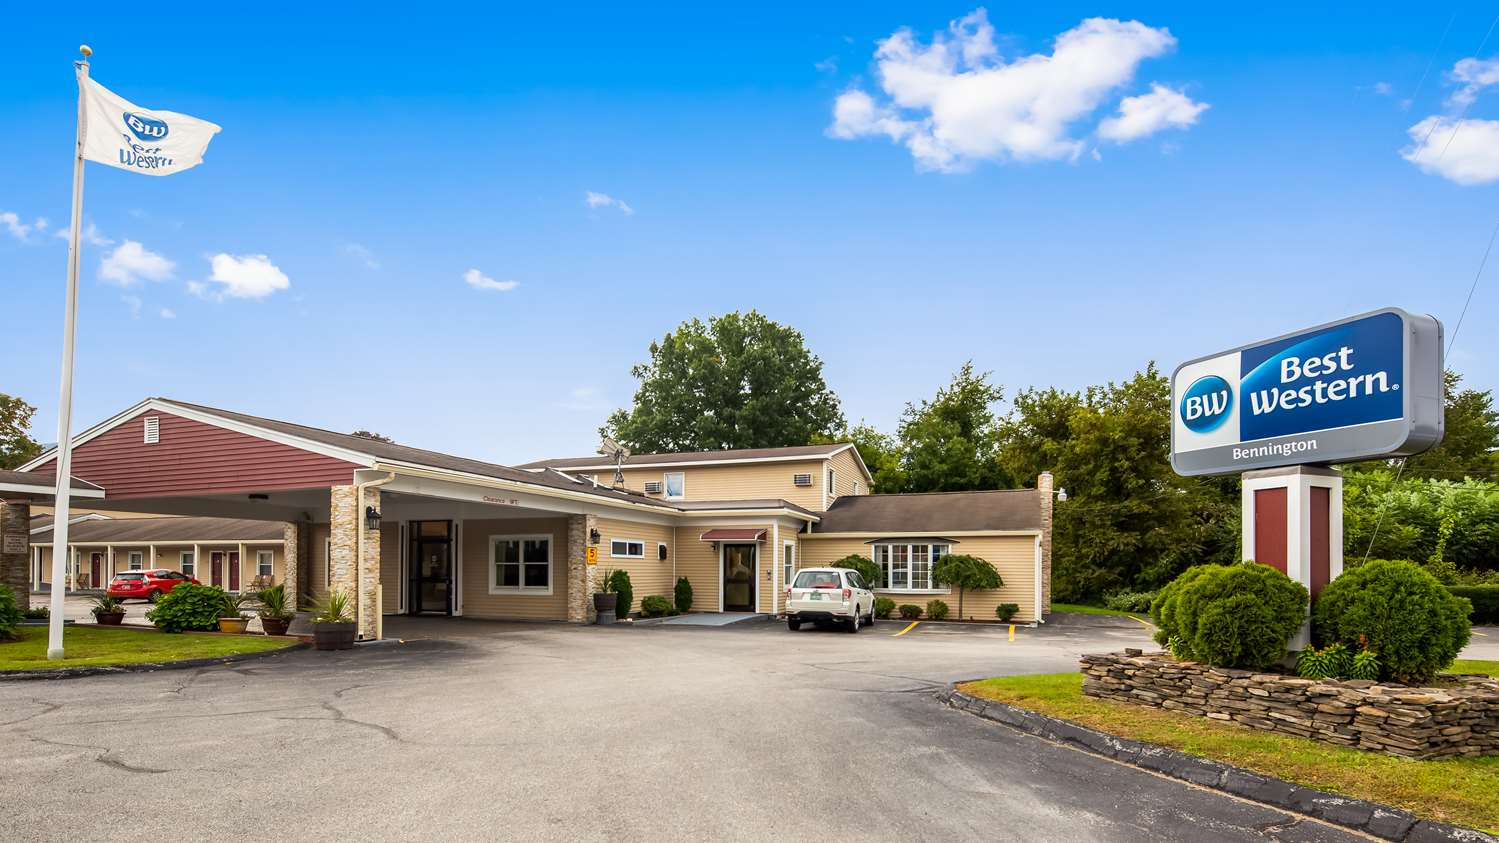 Best Western Plus New Englander Inn Bennington